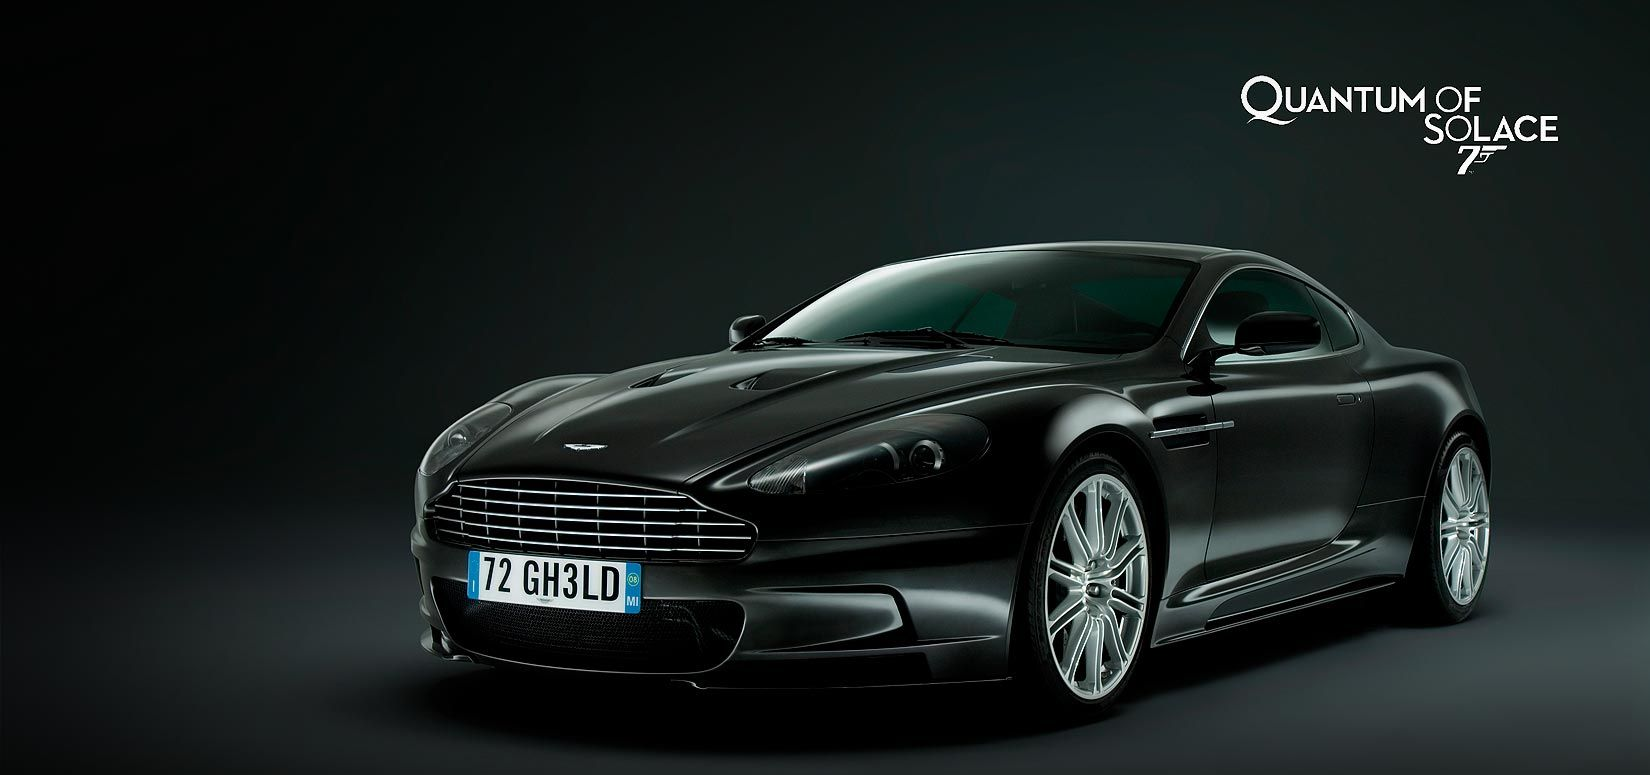 bond & the aston martin: quantum of solace, following on from the